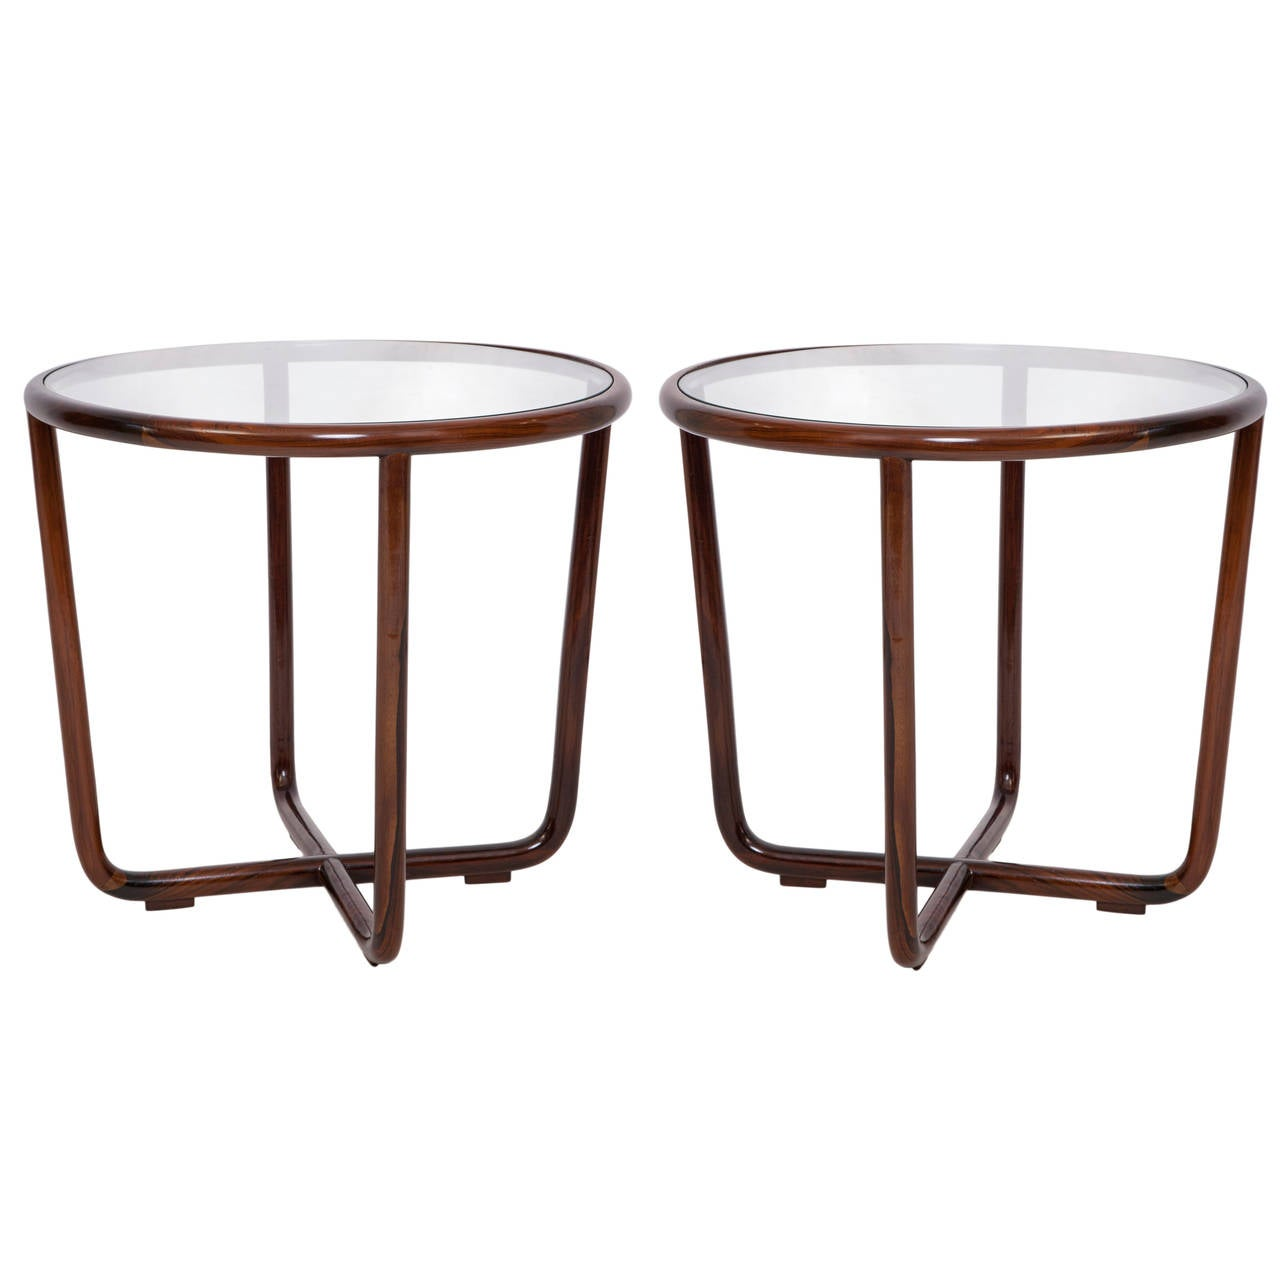 Pair of joaquim tenreiro round side tables in jacaranda for Round wood side table